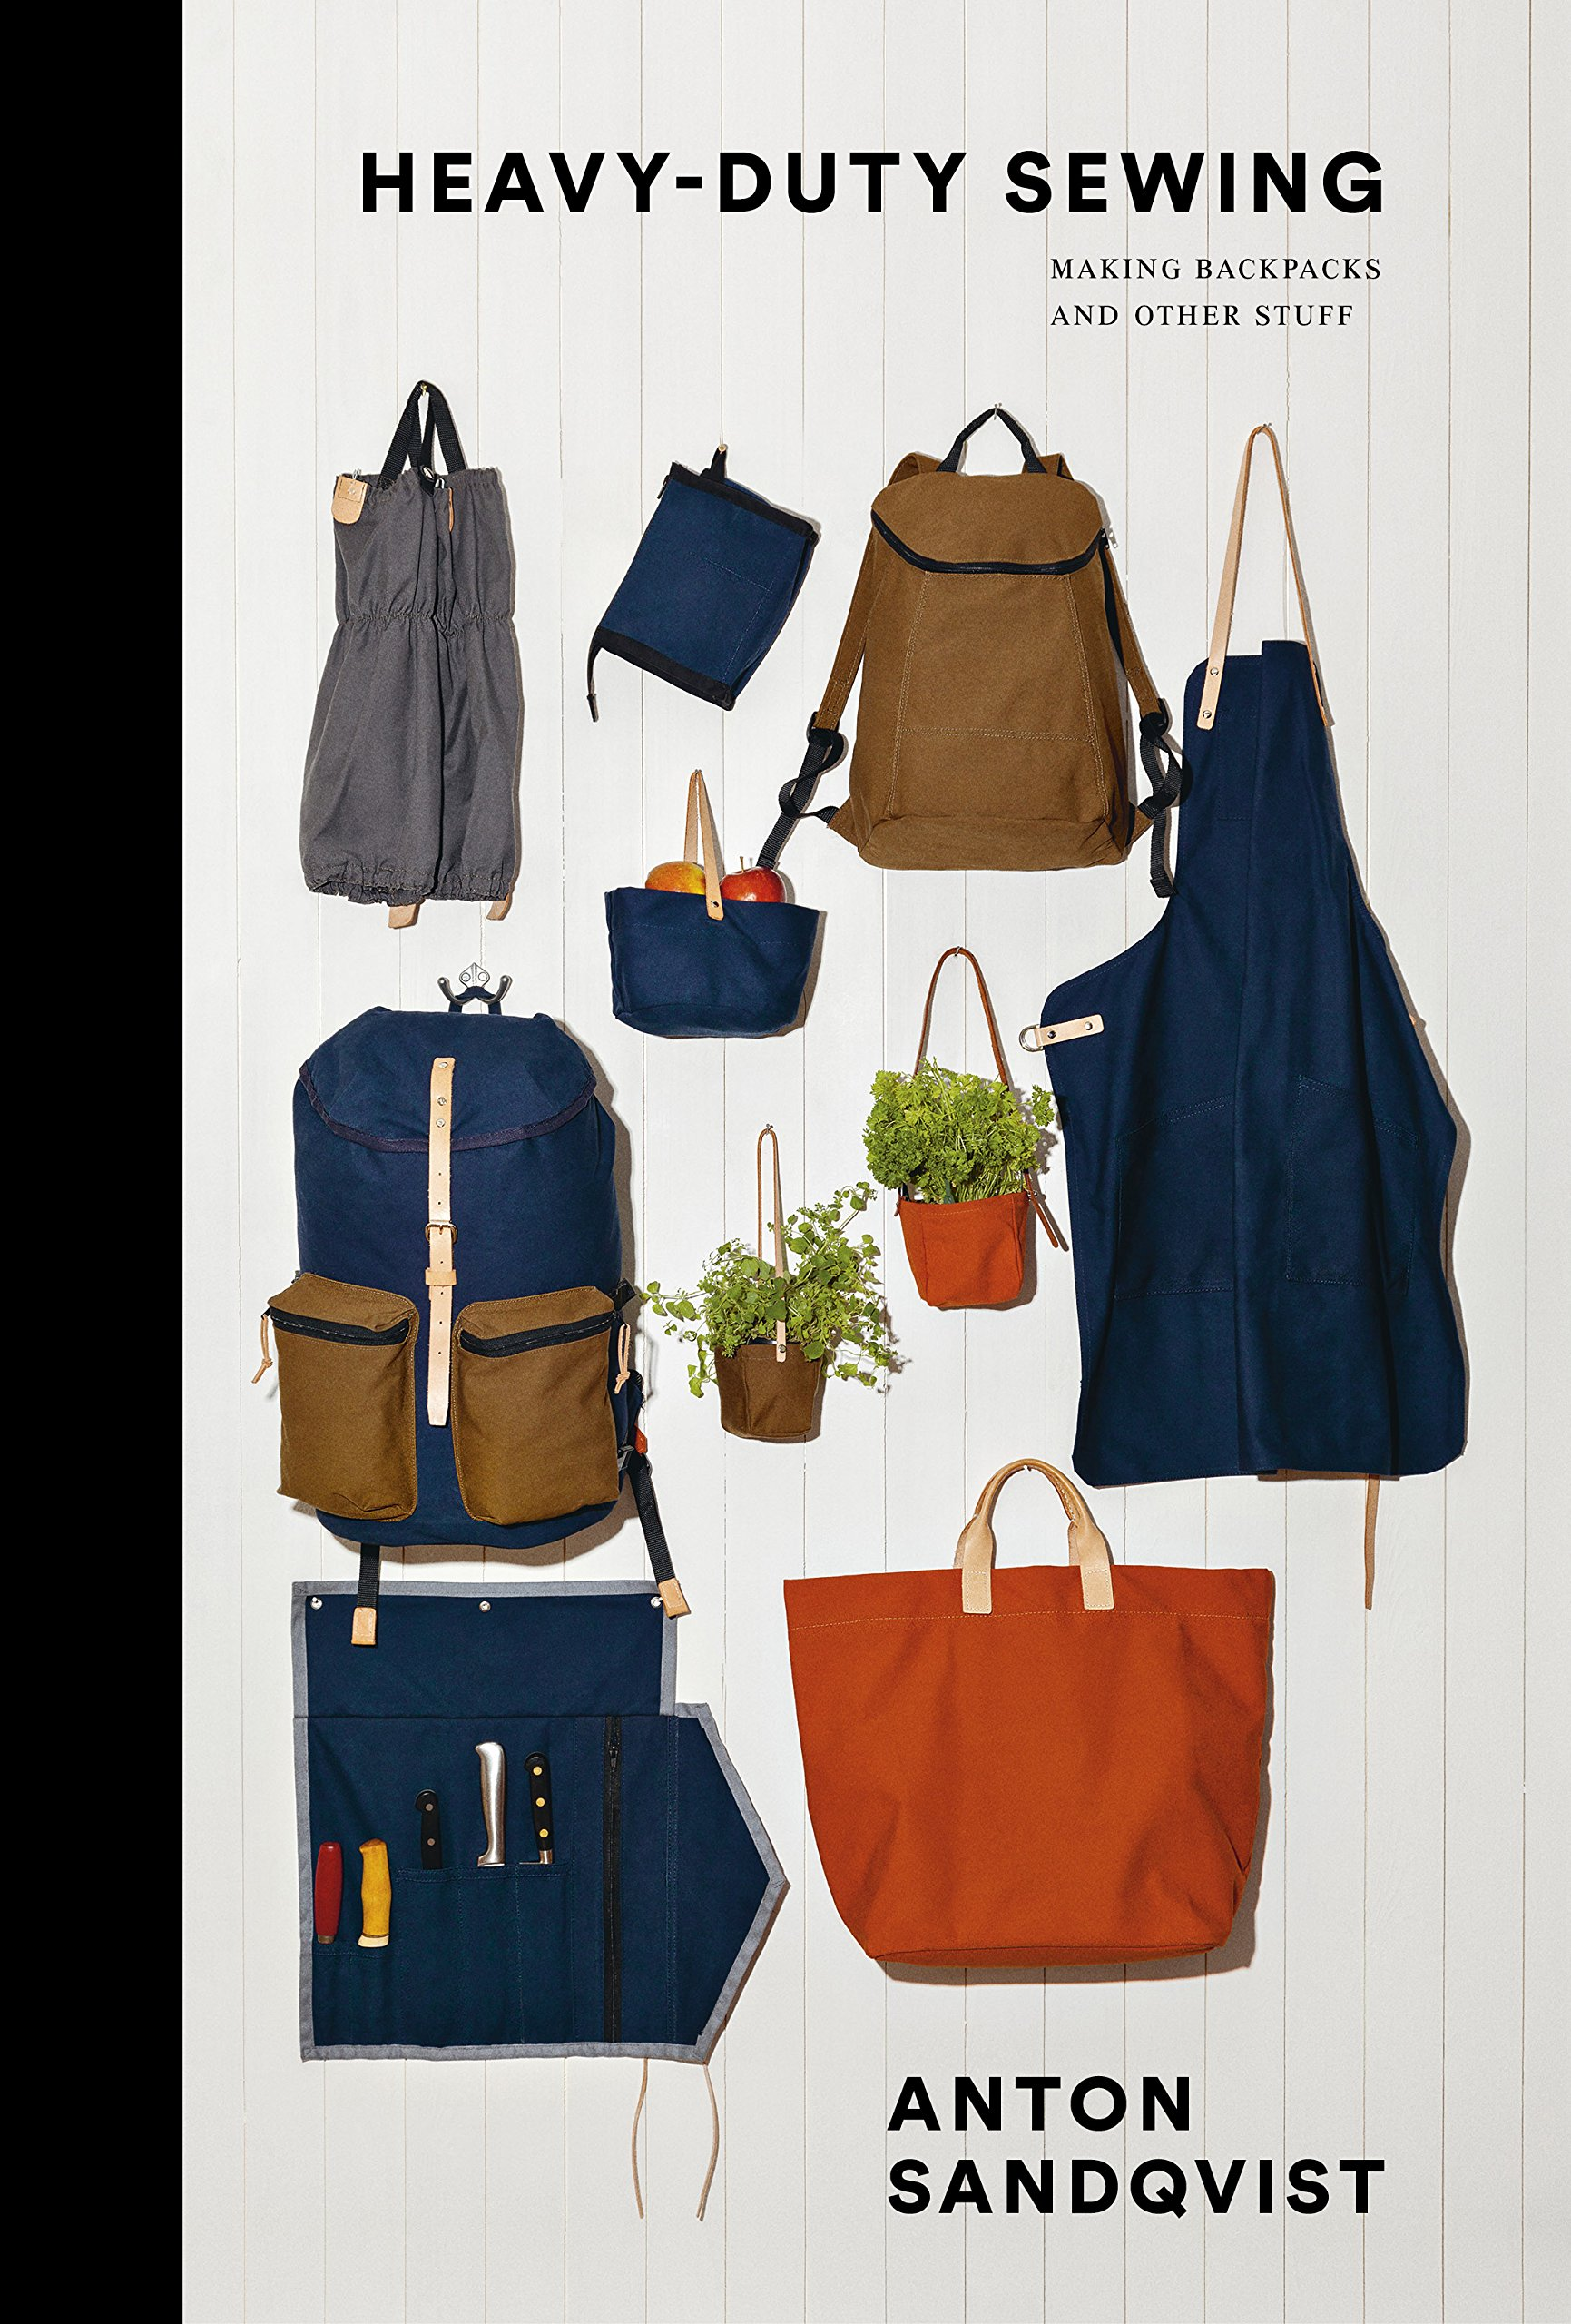 Heavy Duty Sewing  Making Backpacks and Other Stuff  Anton Sandqvist ... 84fe228206